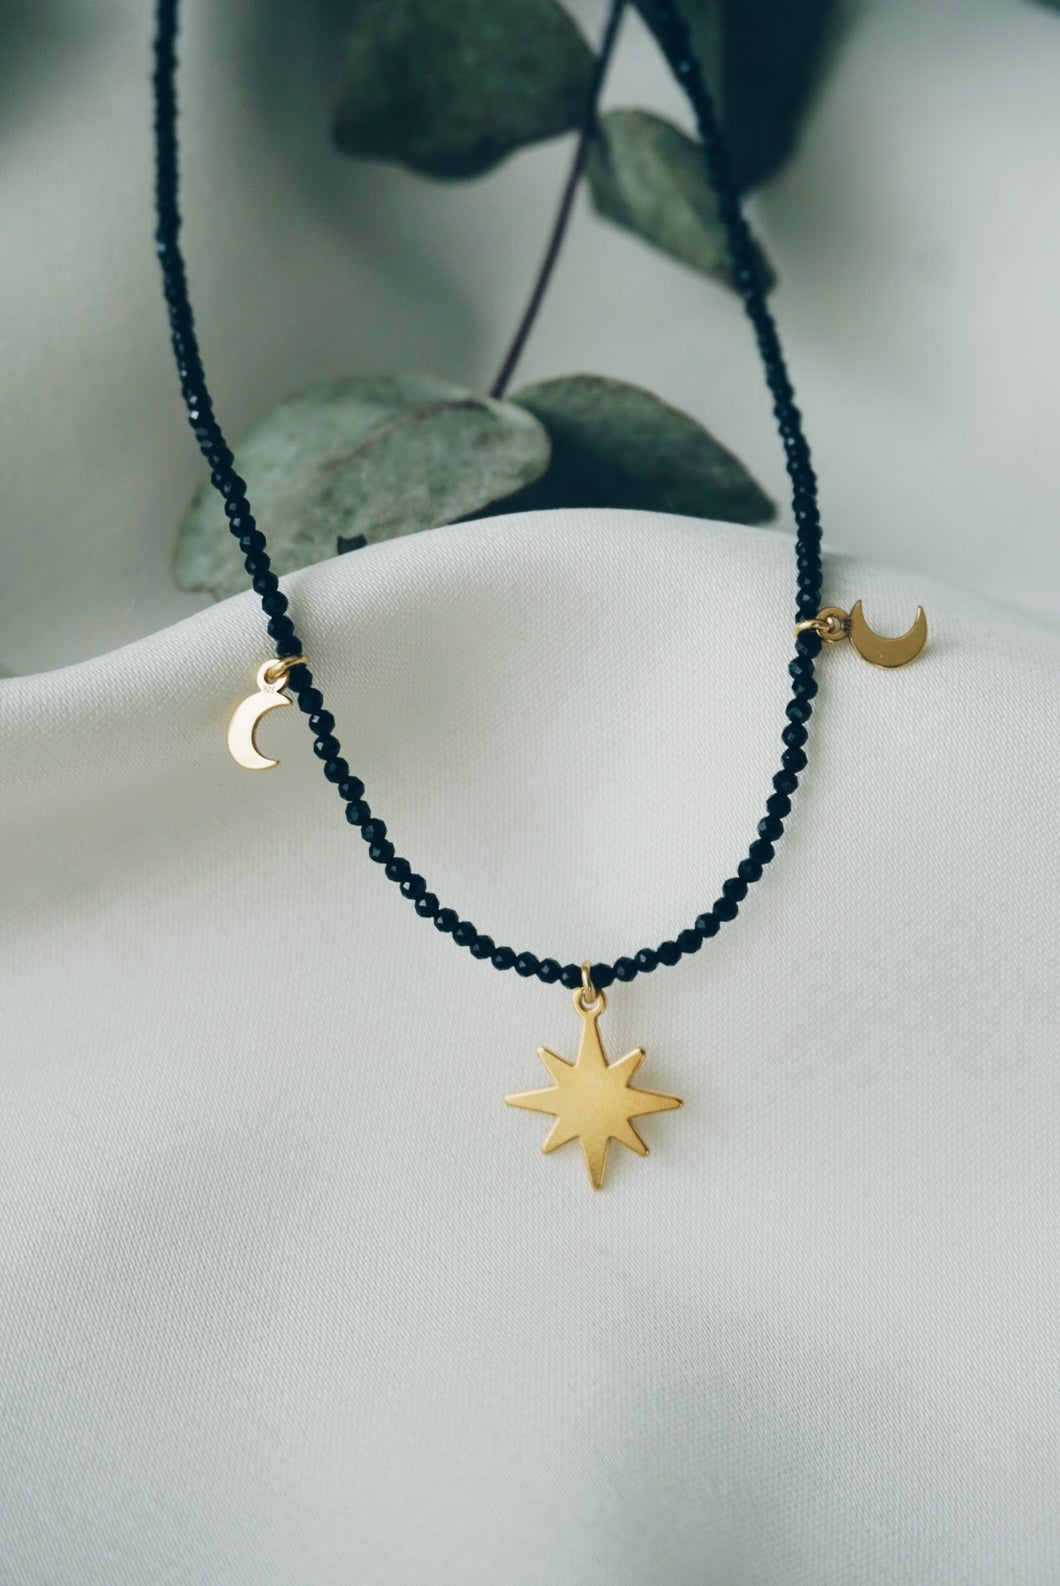 Star moon spinel necklace